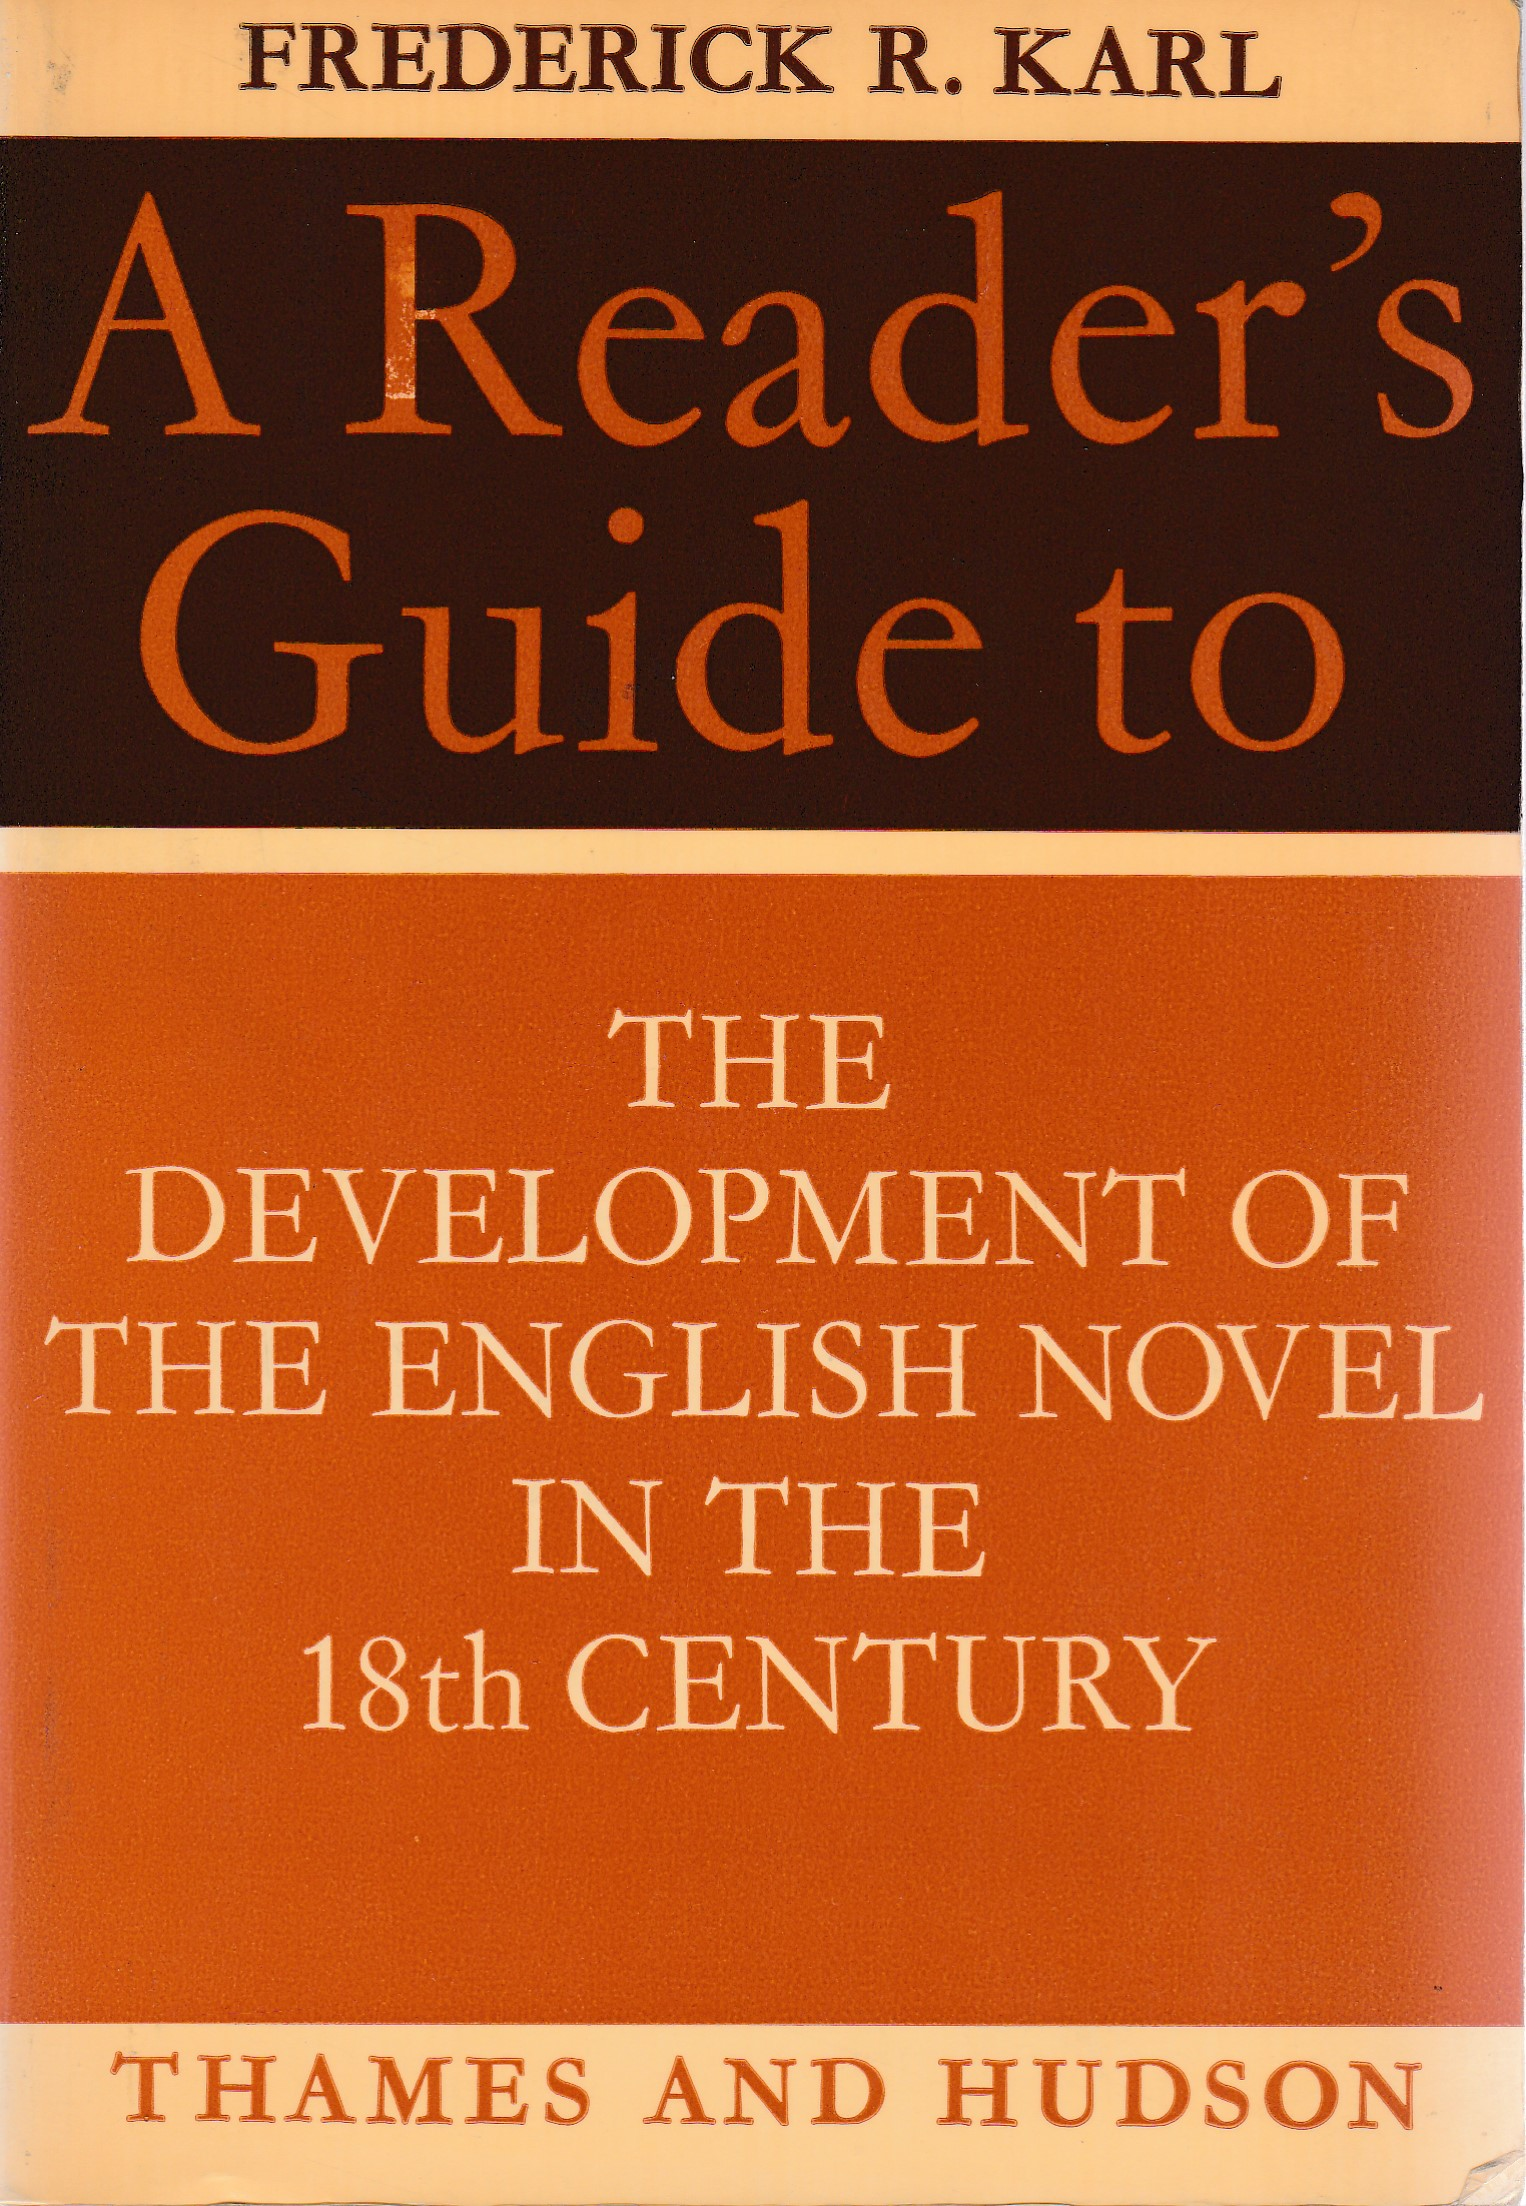 A Reader's Guide to the Development of the English Novel in the 18th Century